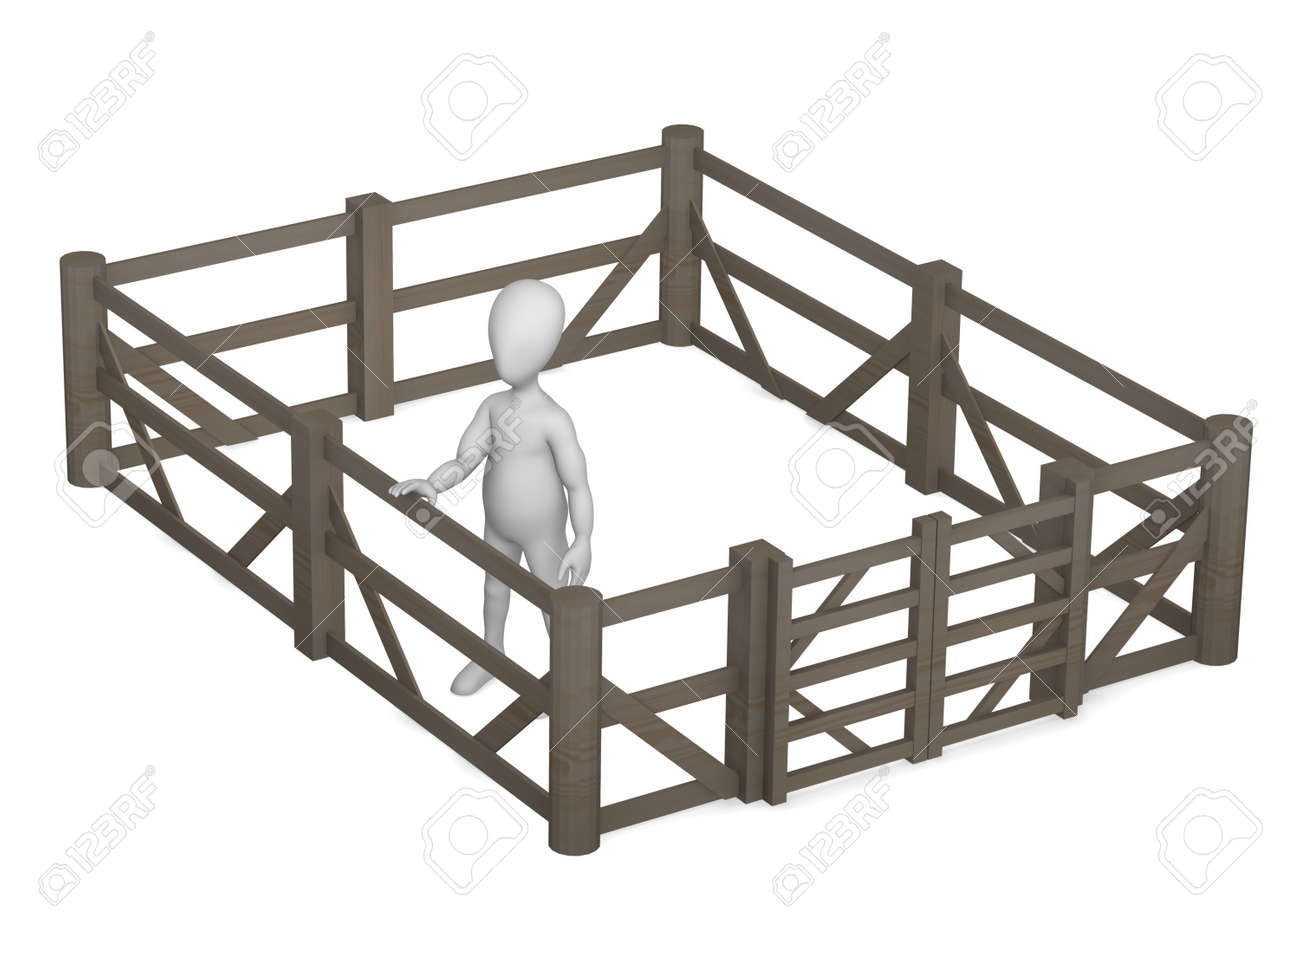 3d render of cartoon character with fence Stock Photo - 12958760